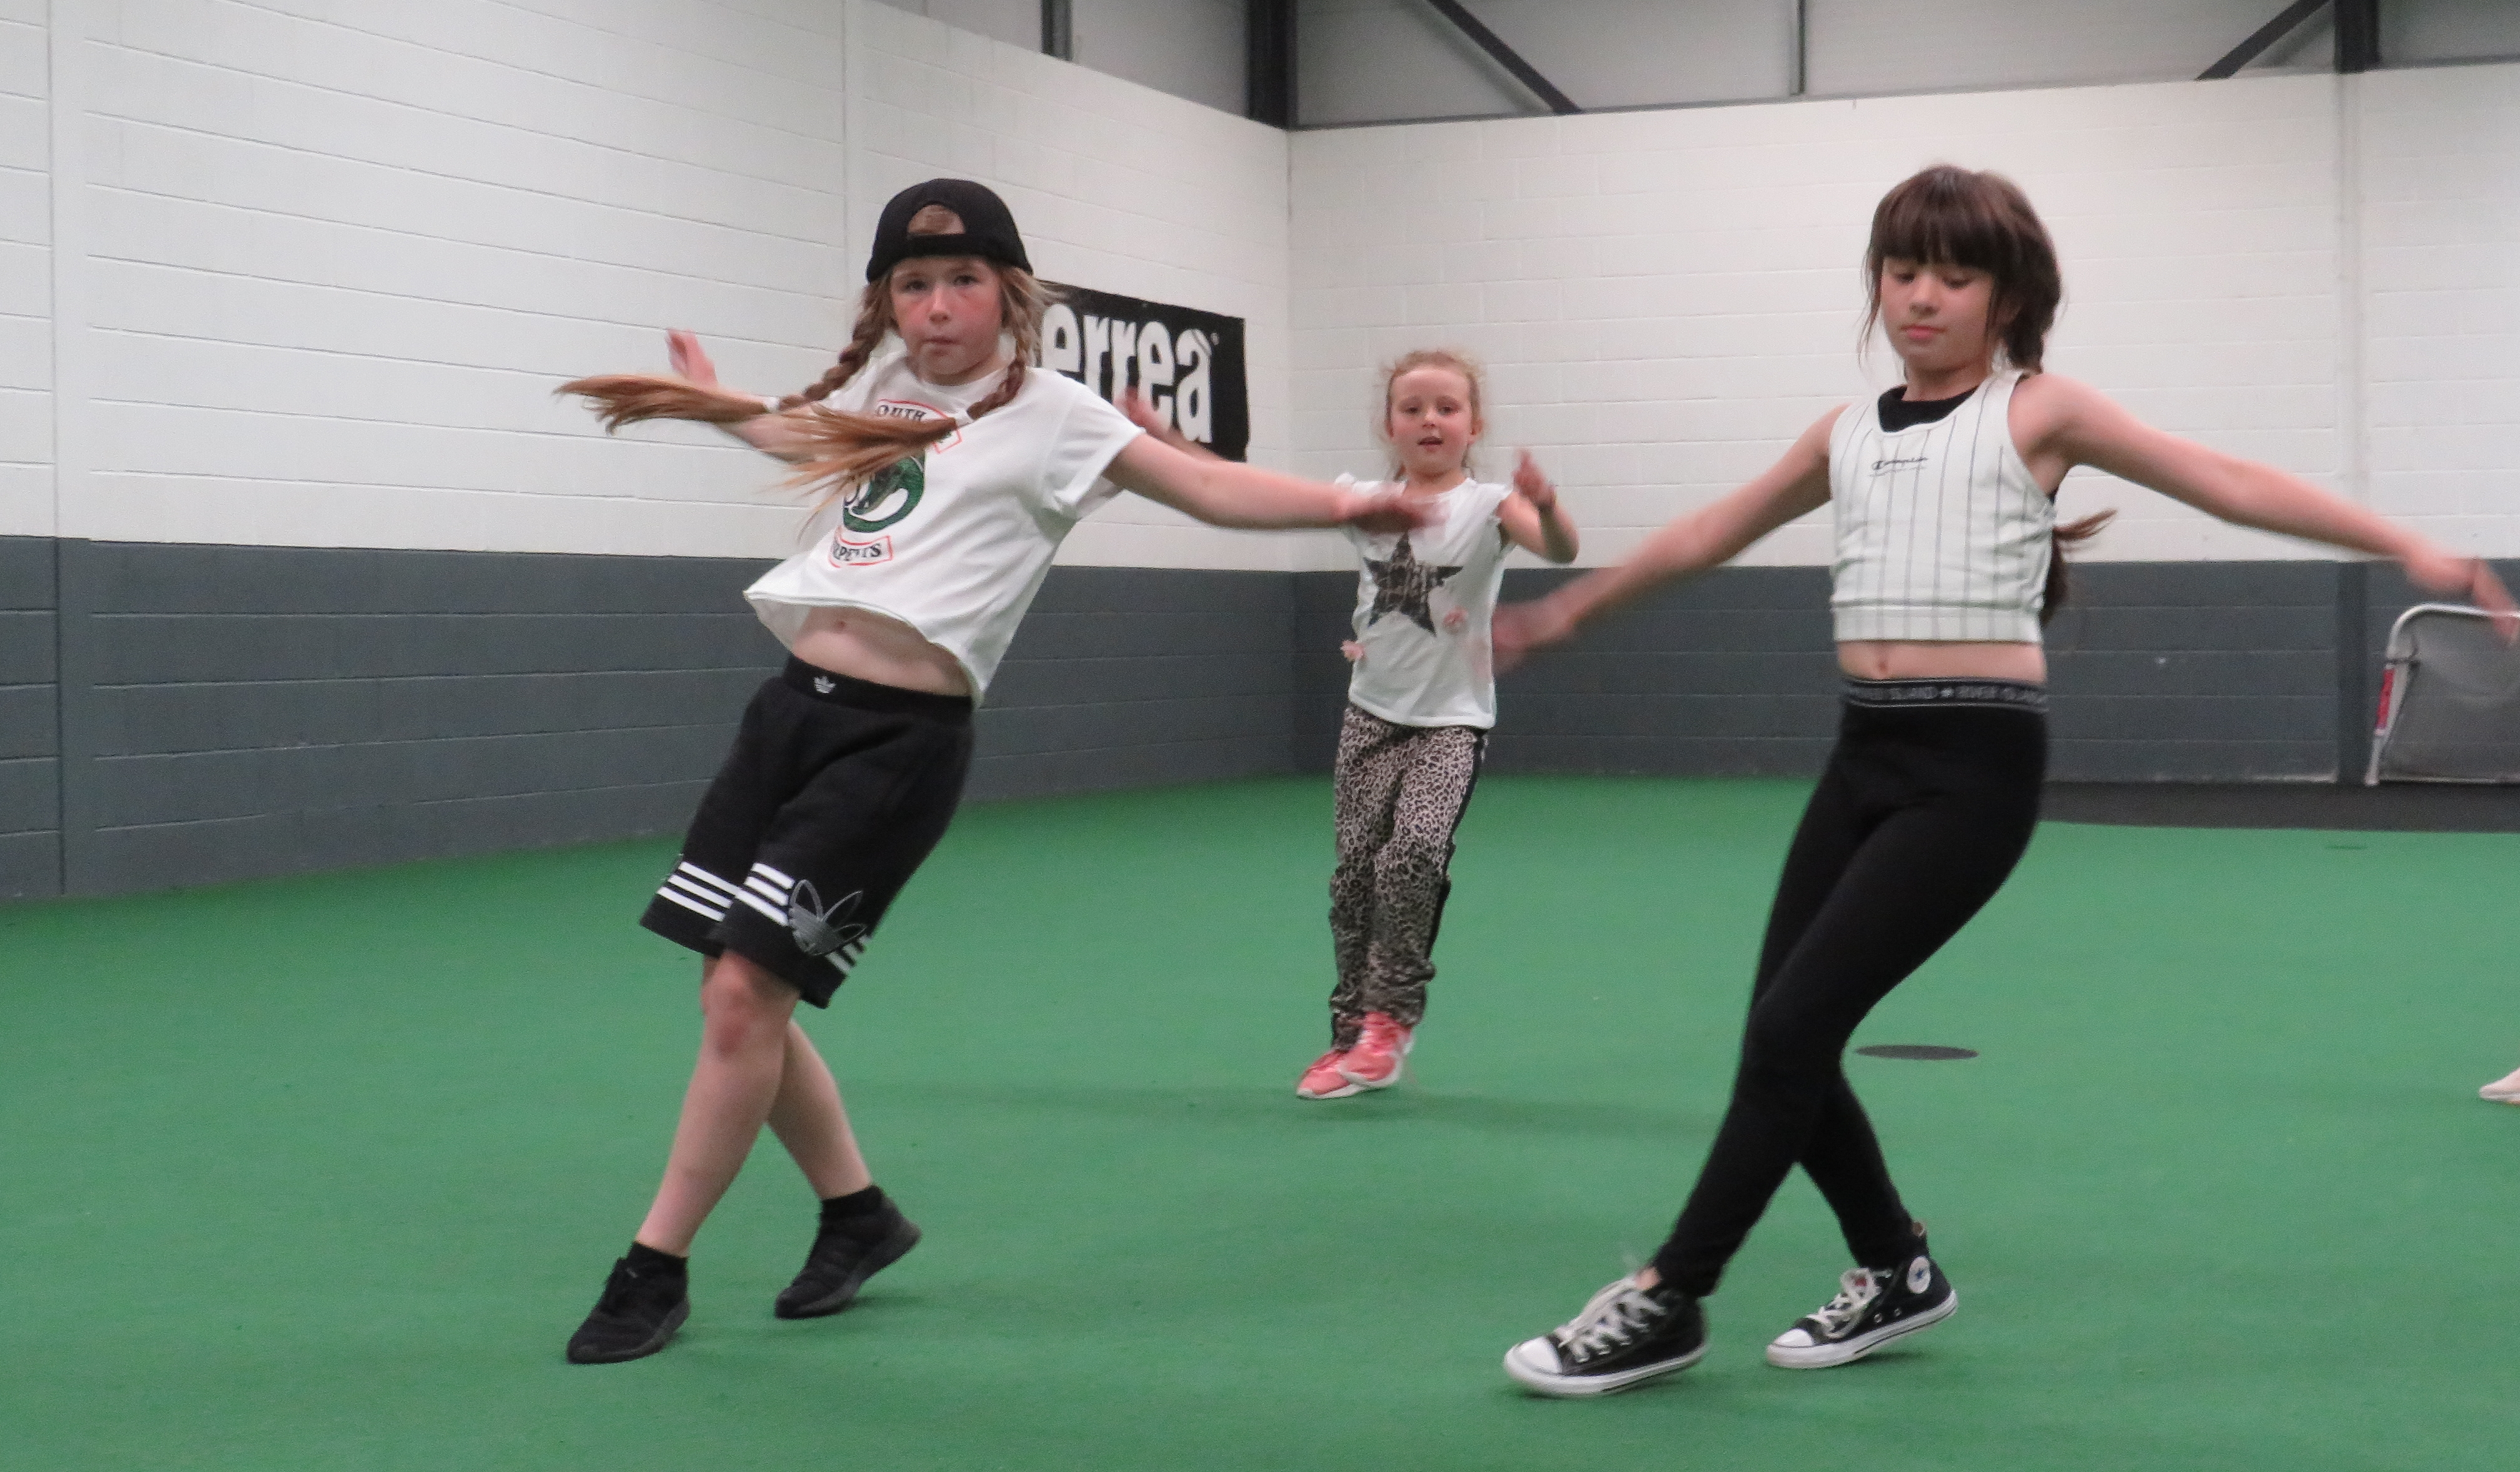 Stoke children fall in love with dance at Foundation's summer camp